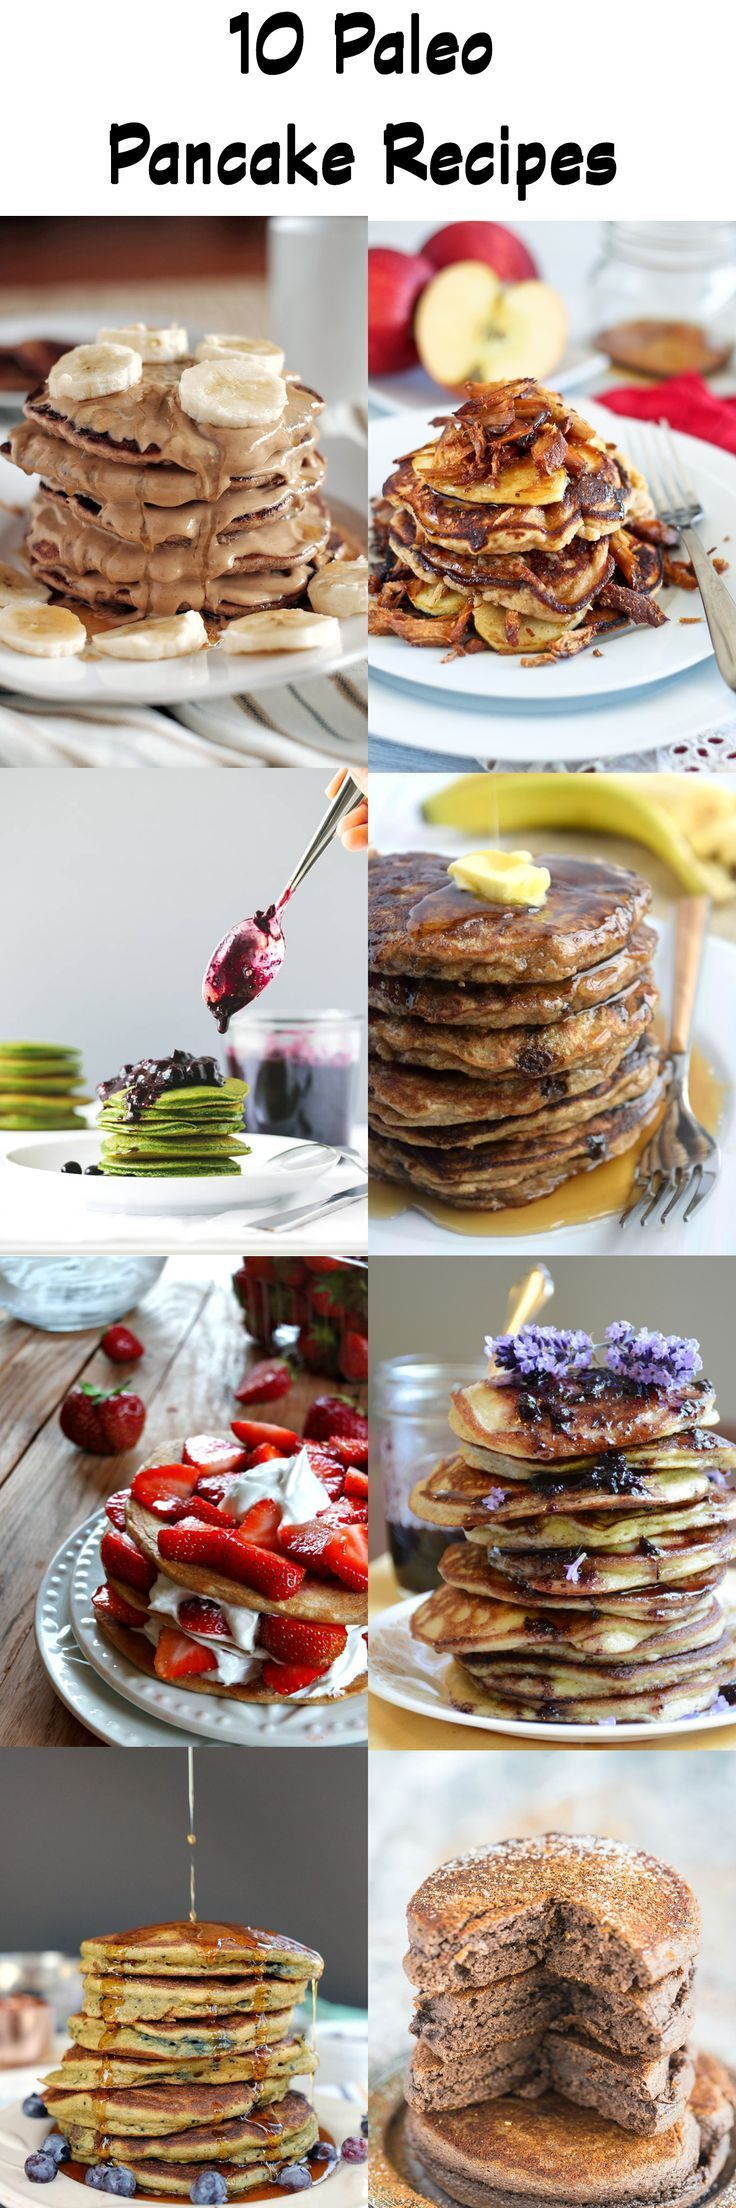 This Paleo pancake roundup features 10 drool-worthy pancakes from your favorite Paleo bloggers. Recipes are gluten free, Paleo and 100% delicious! | http://realsimplegood.com